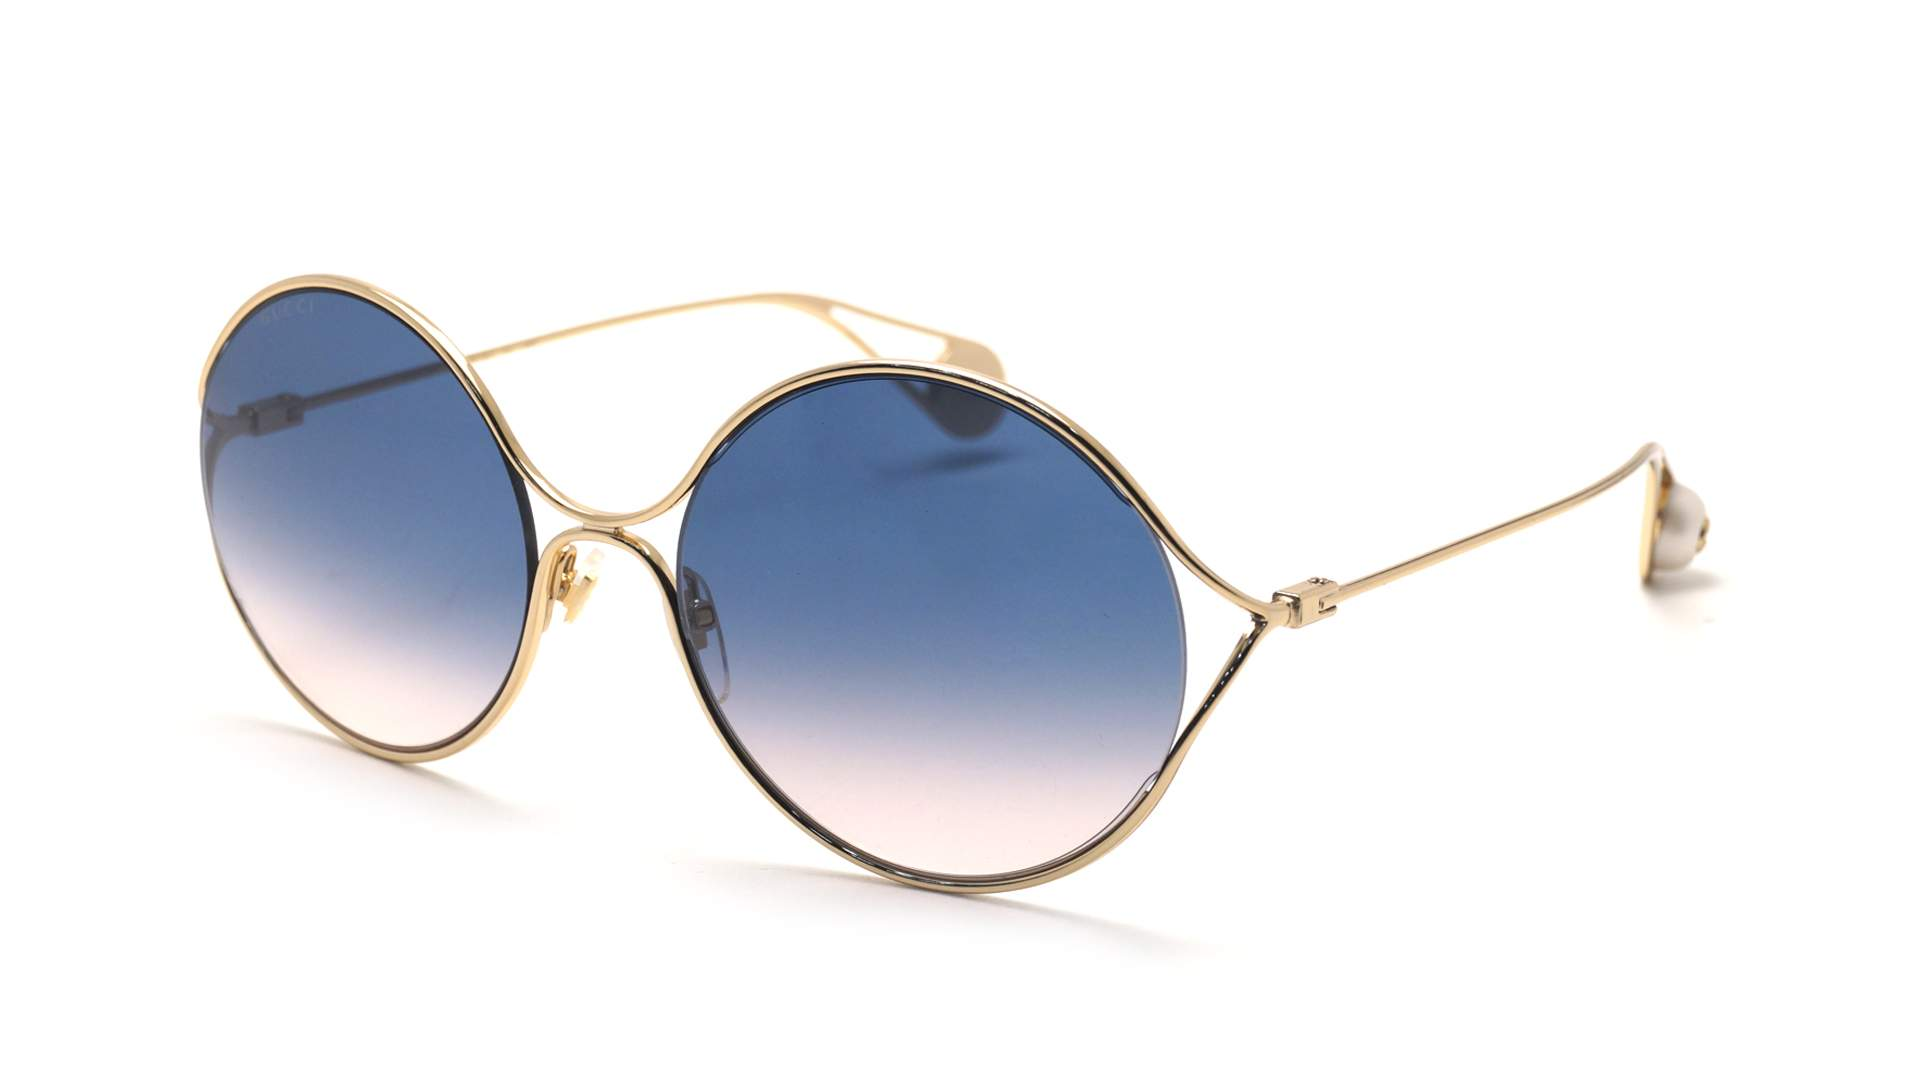 b0ce26b982c Sunglasses Gucci GG0253S 003 58-20 Gold Medium Gradient